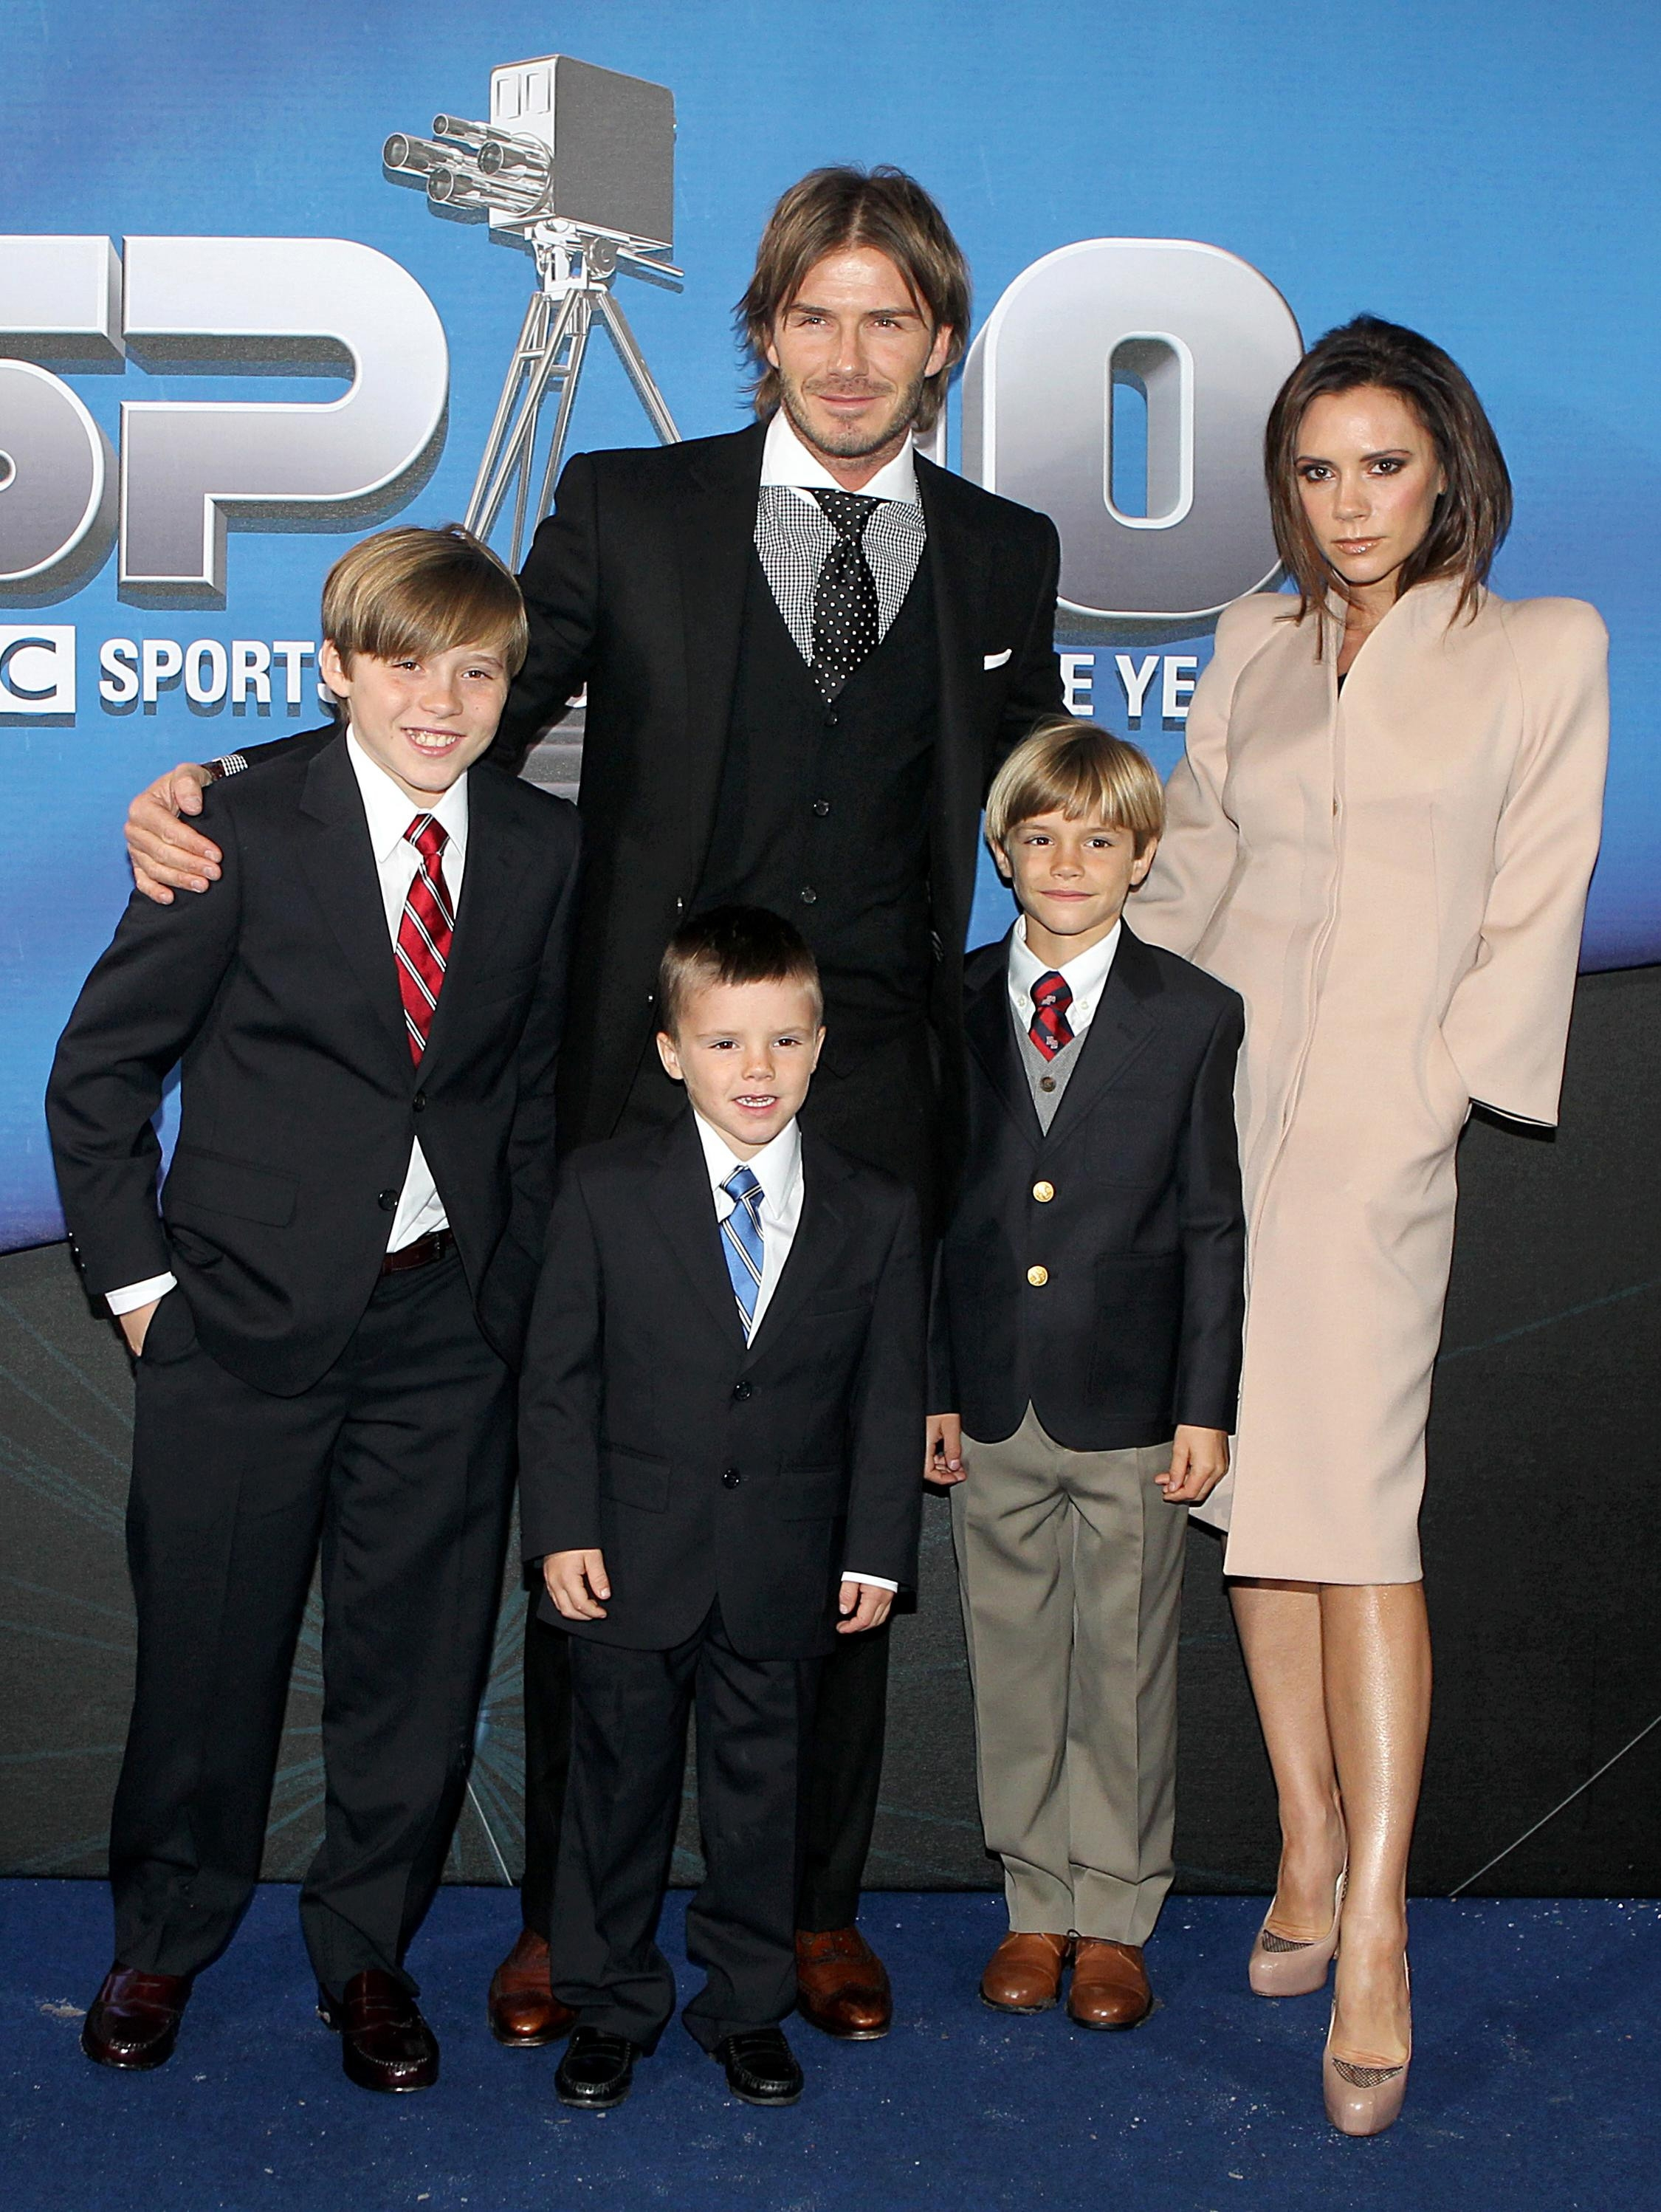 The Beckhams